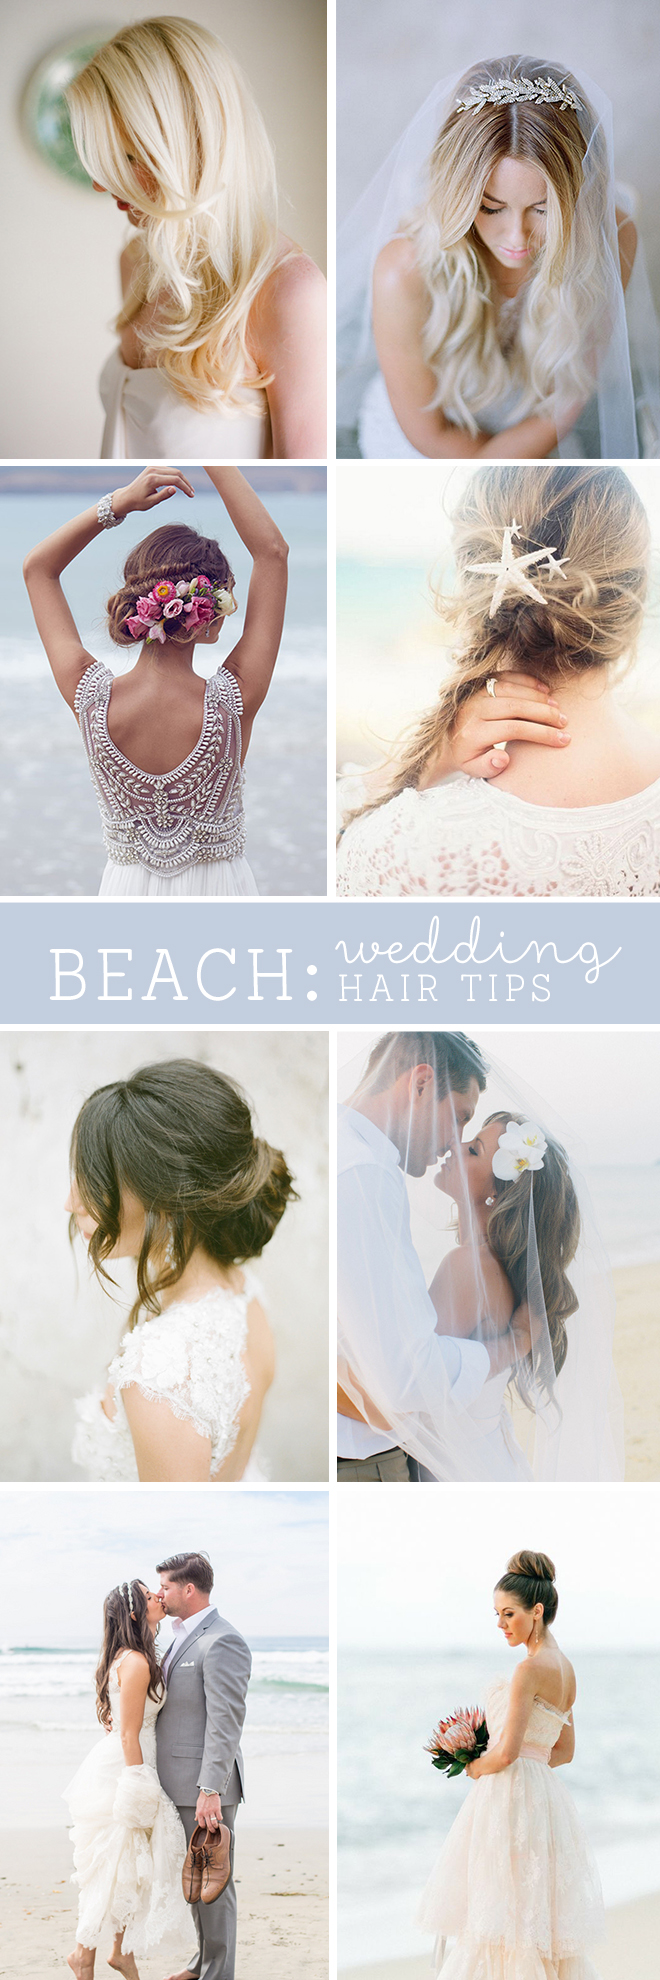 The best beach wedding hair tips awesome tips for beach wedding hair must read junglespirit Images